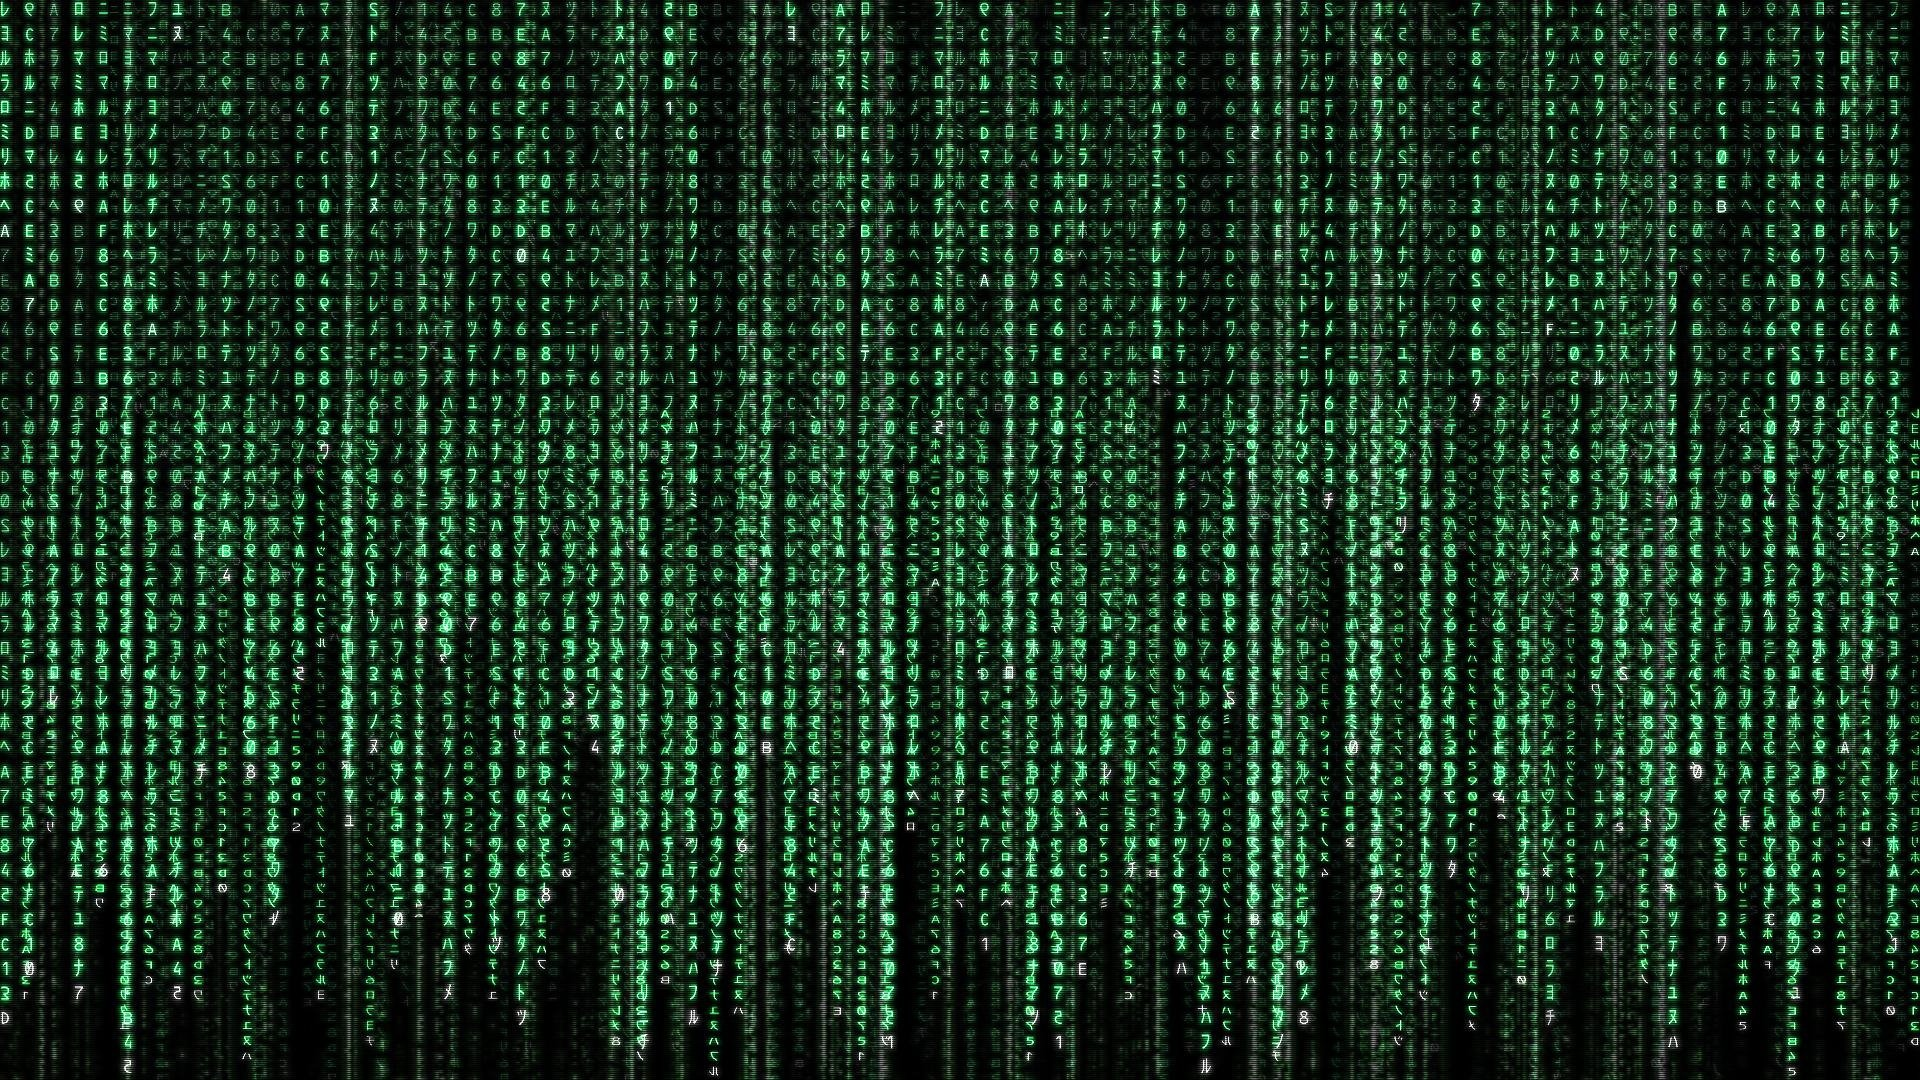 31 the matrix hd wallpapers | background images - wallpaper abyss